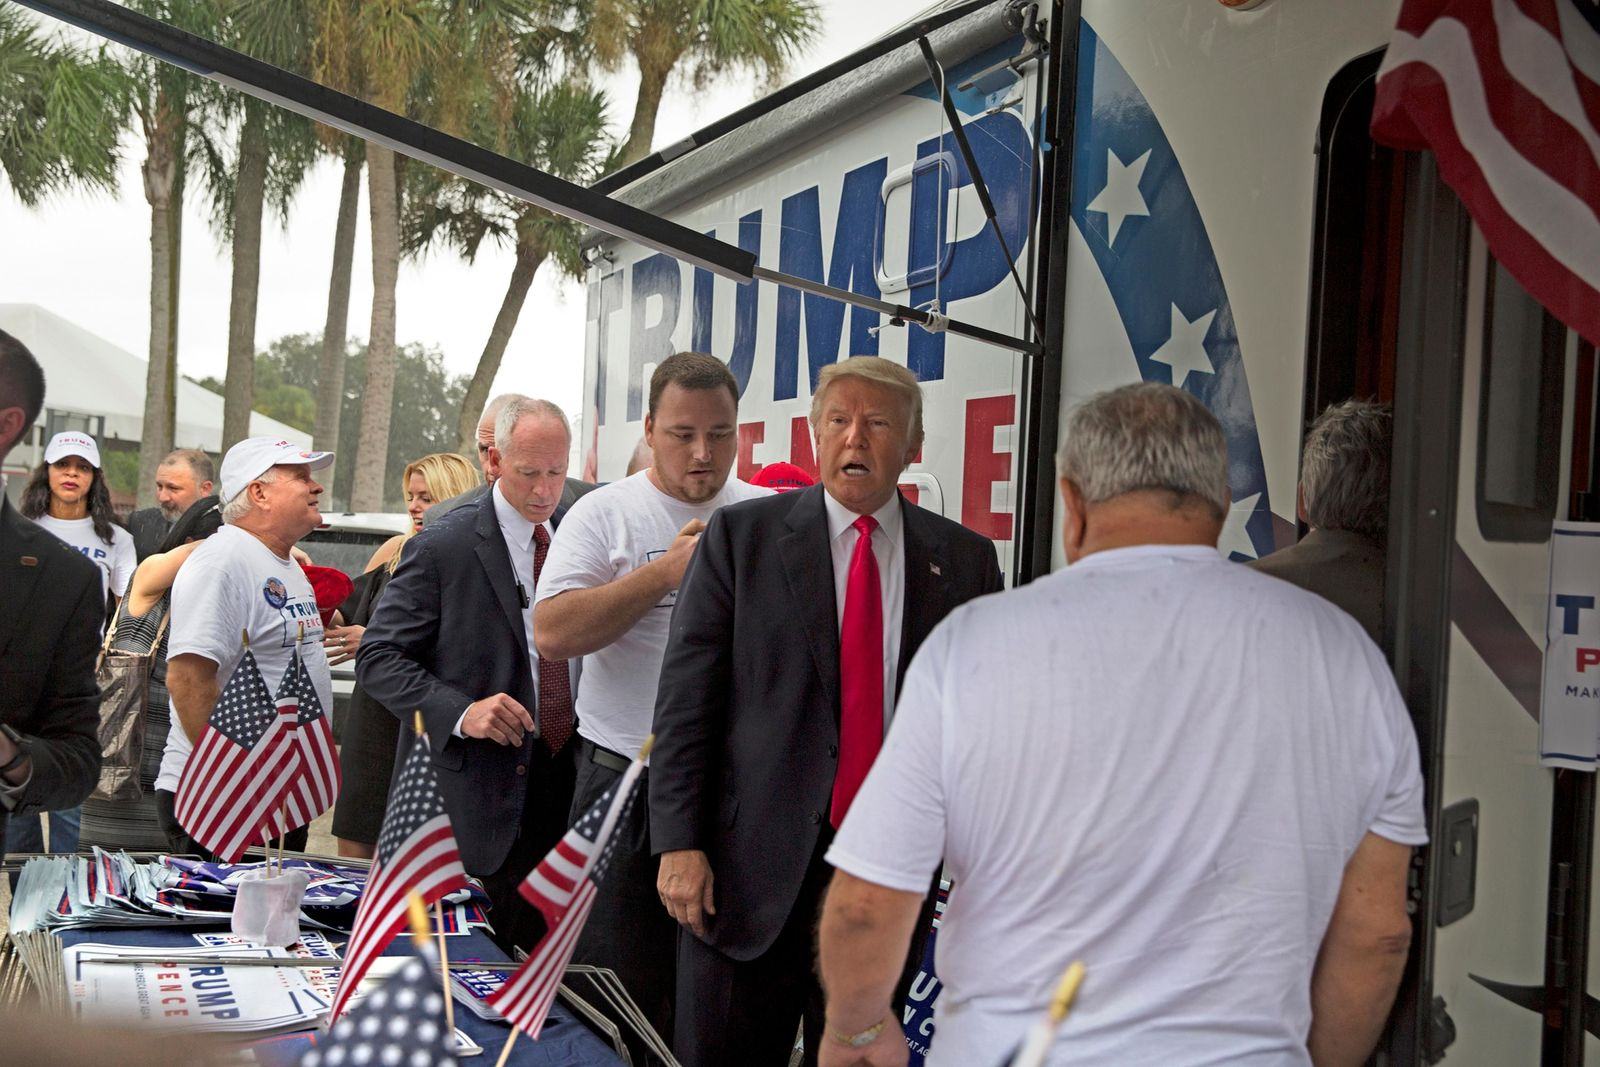 In an Aug. 24, 2016 photo, Republican presidential nominee Donald Trump meets supporters organizing voter registration and support for his campaign just before a rally at the Florida State Fairgrounds in Tampa, Fla. (Loren Elliott/Tampa Bay Times via AP)